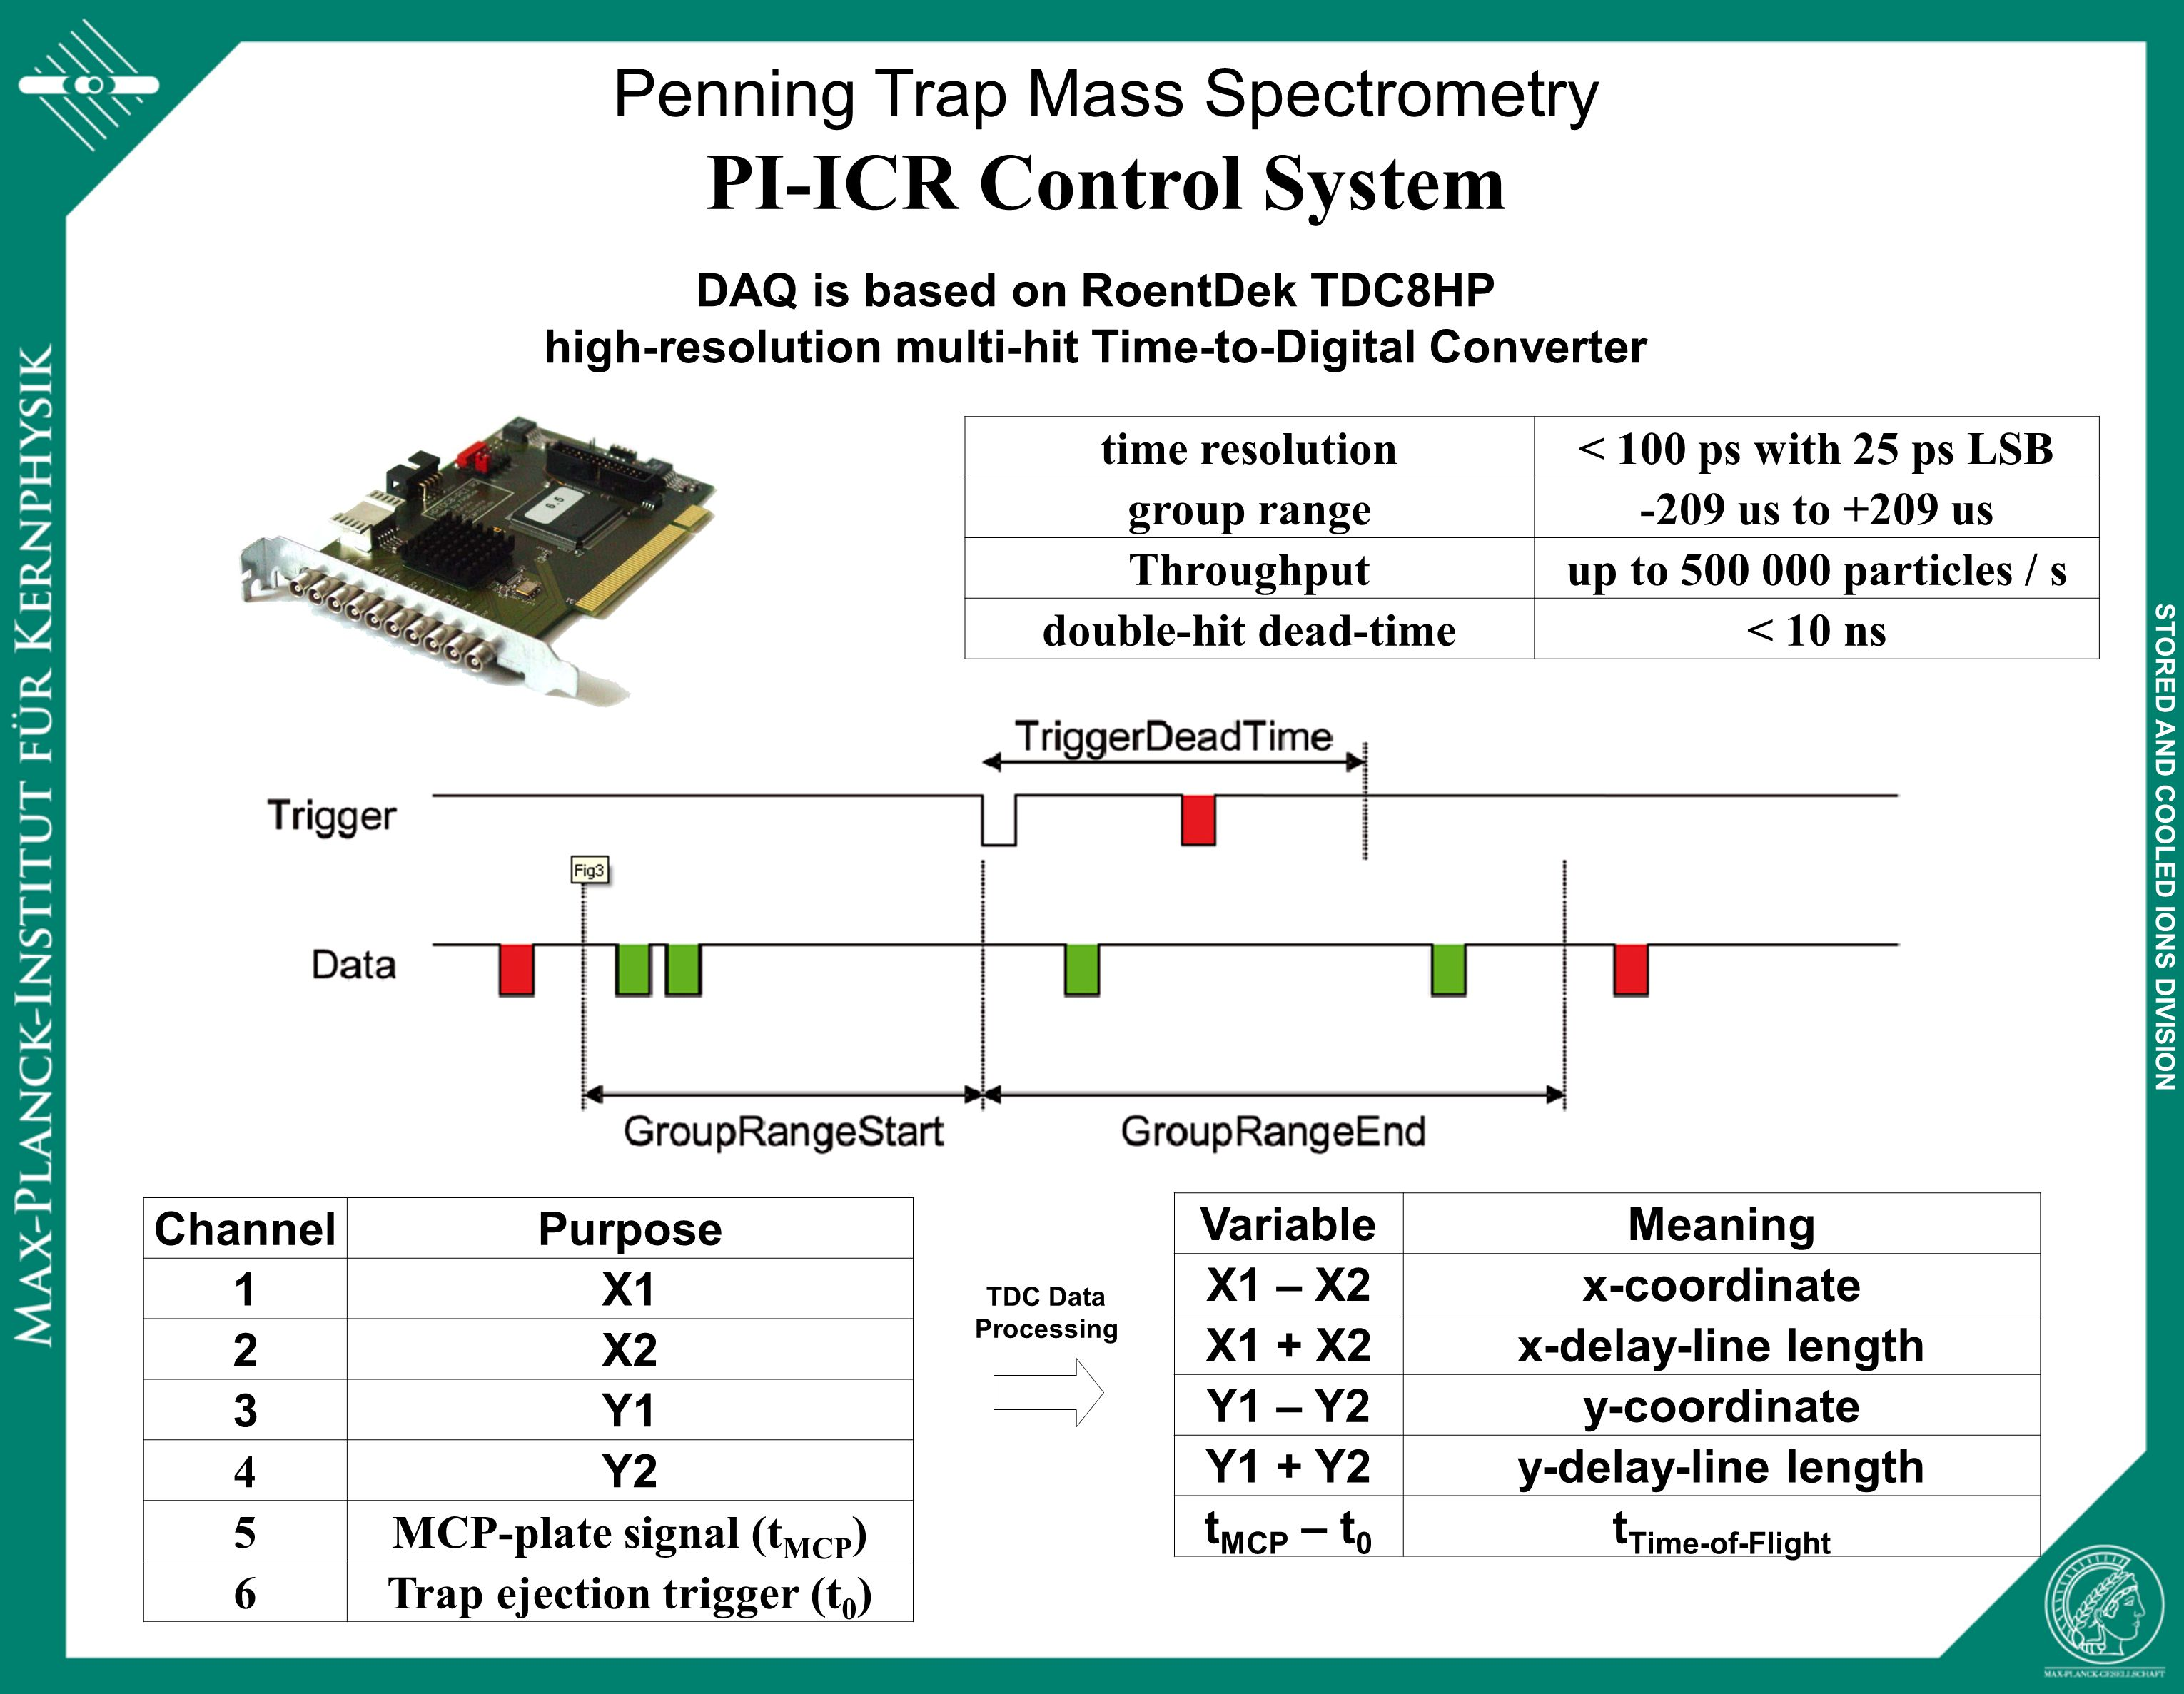 STORED AND COOLED IONS DIVISION Penning Trap Mass Spectrometry PI-ICR Control System X1 – X2x-coordinate Y1 – Y2y-coordinate t MCP – t 0 t Time-of-Flight X1 + X2x-delay-line length Y1 + Y2y-delay-line length Calibration histograms Cartesian Phase Imaging and ToF for completeness